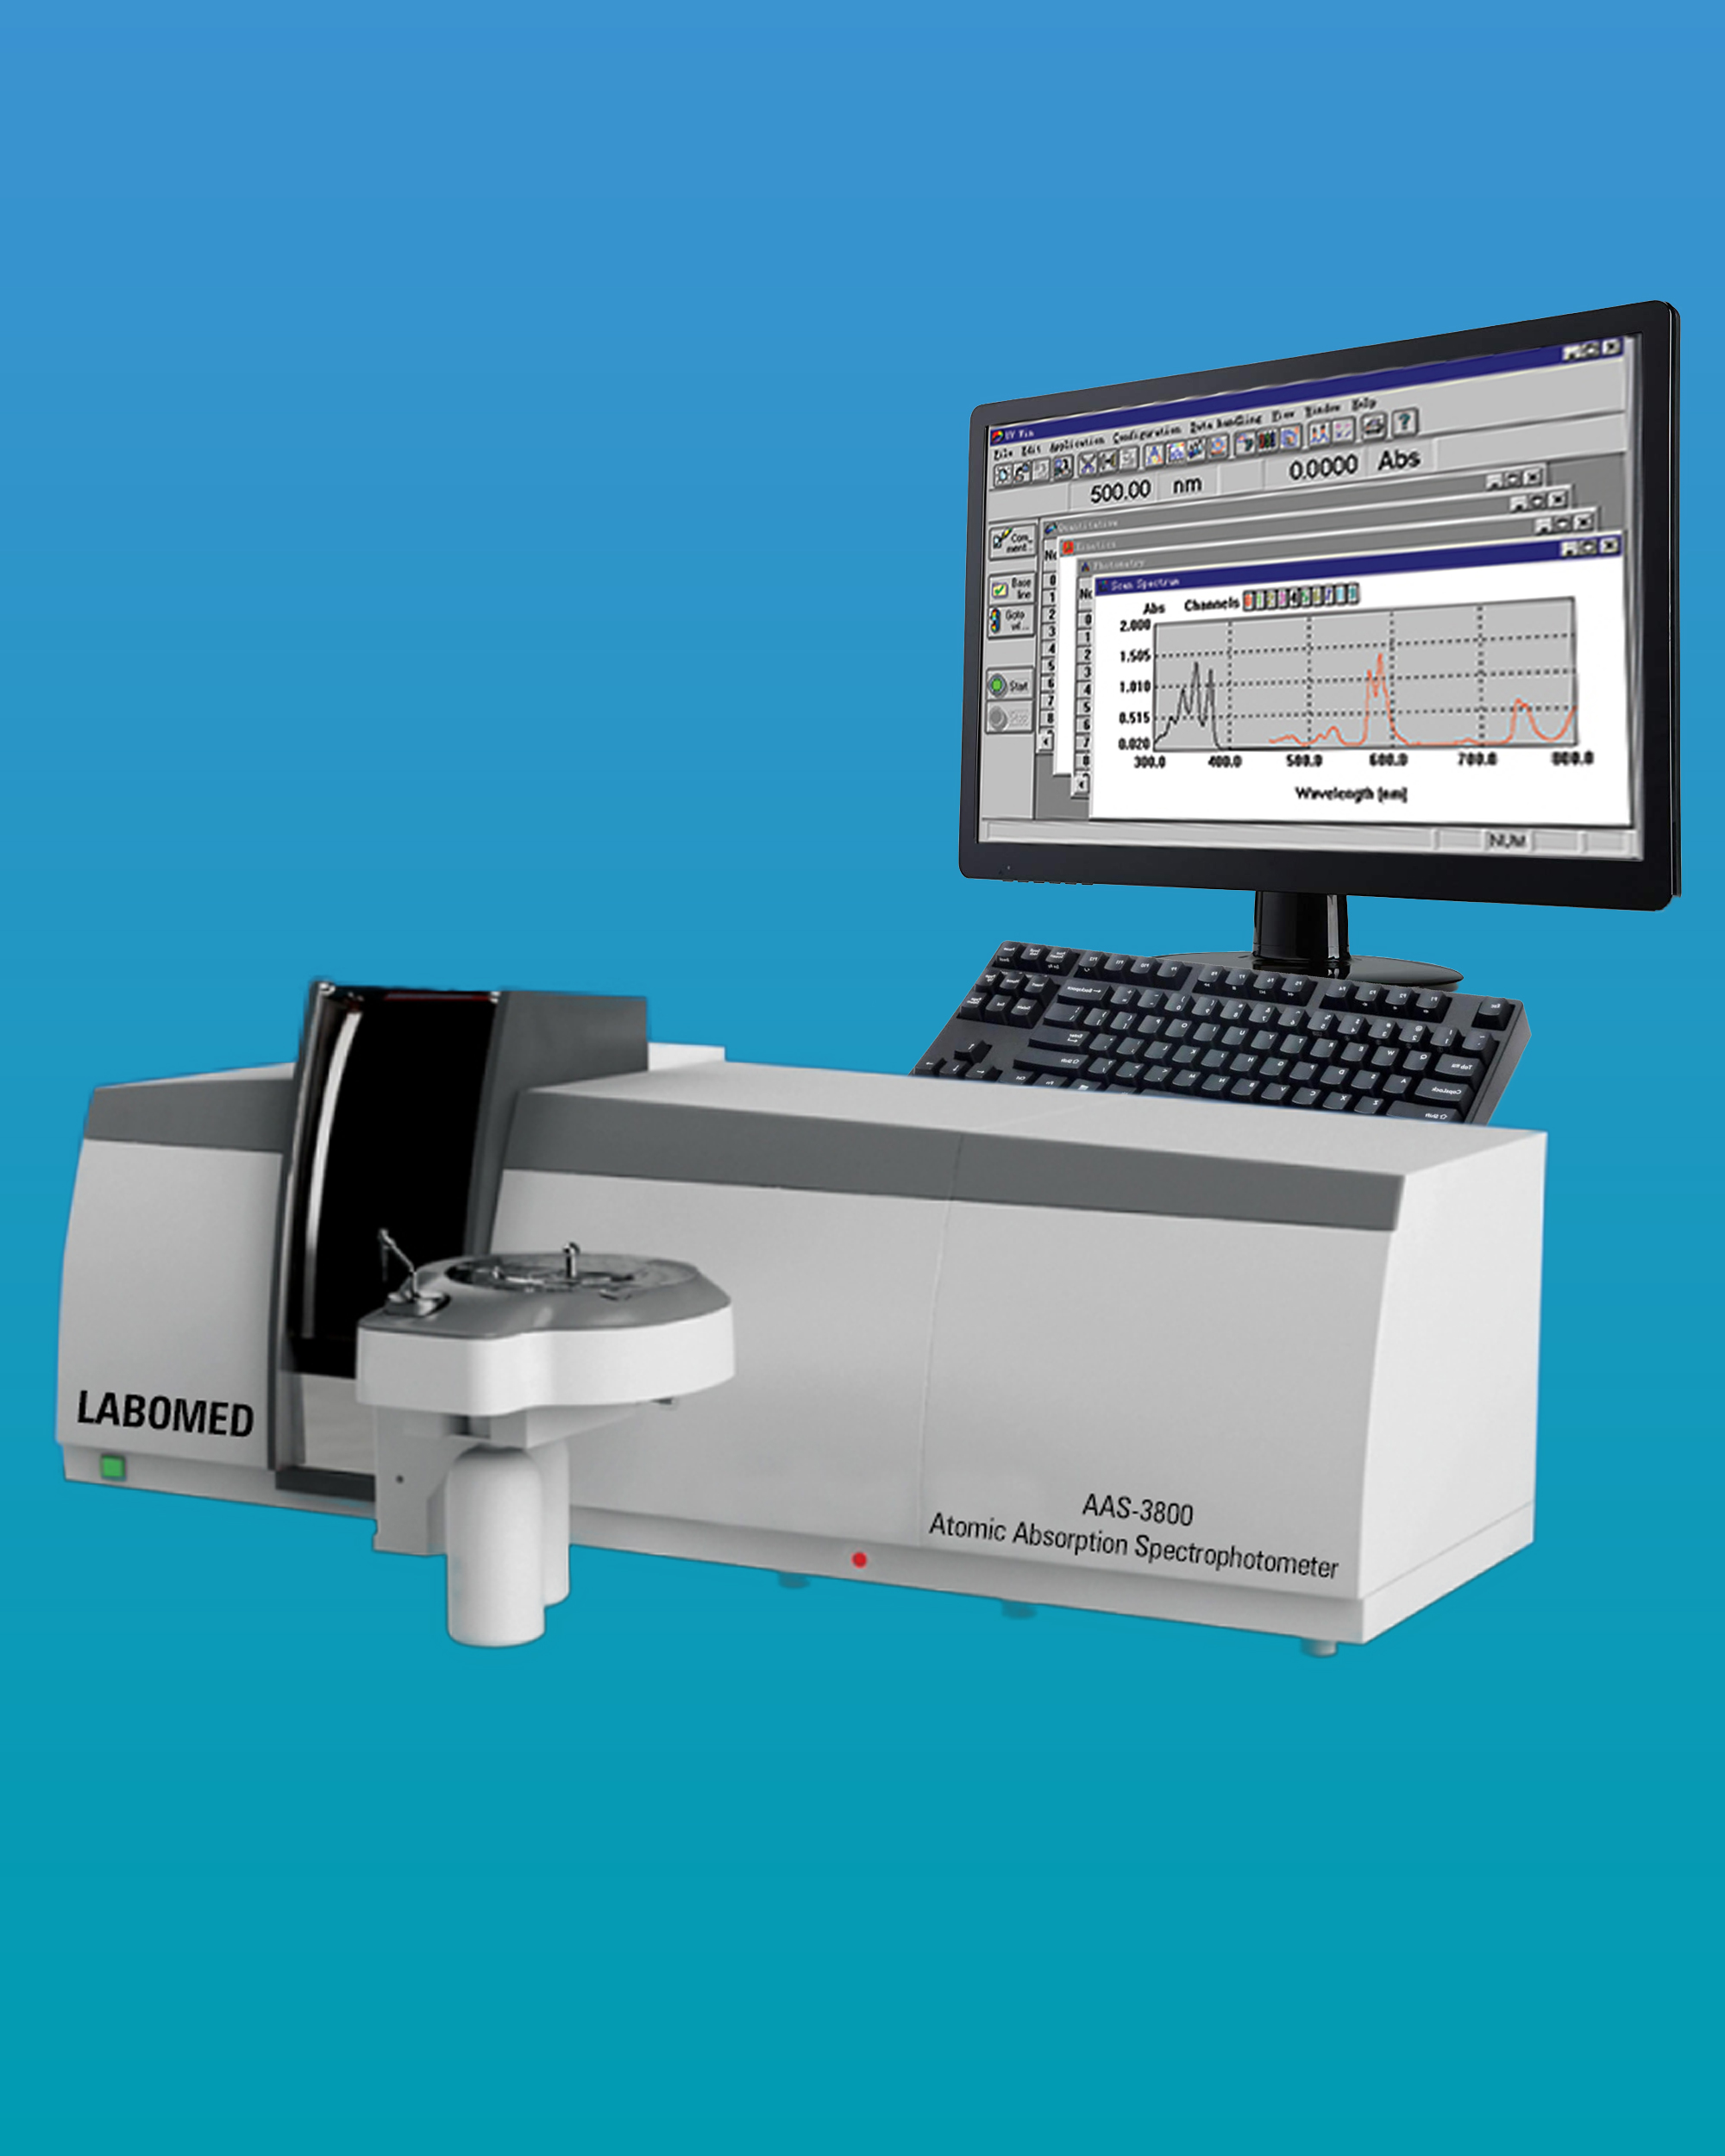 [AAS-3800] Atomic Absorption Spectrophotometer - Flame System